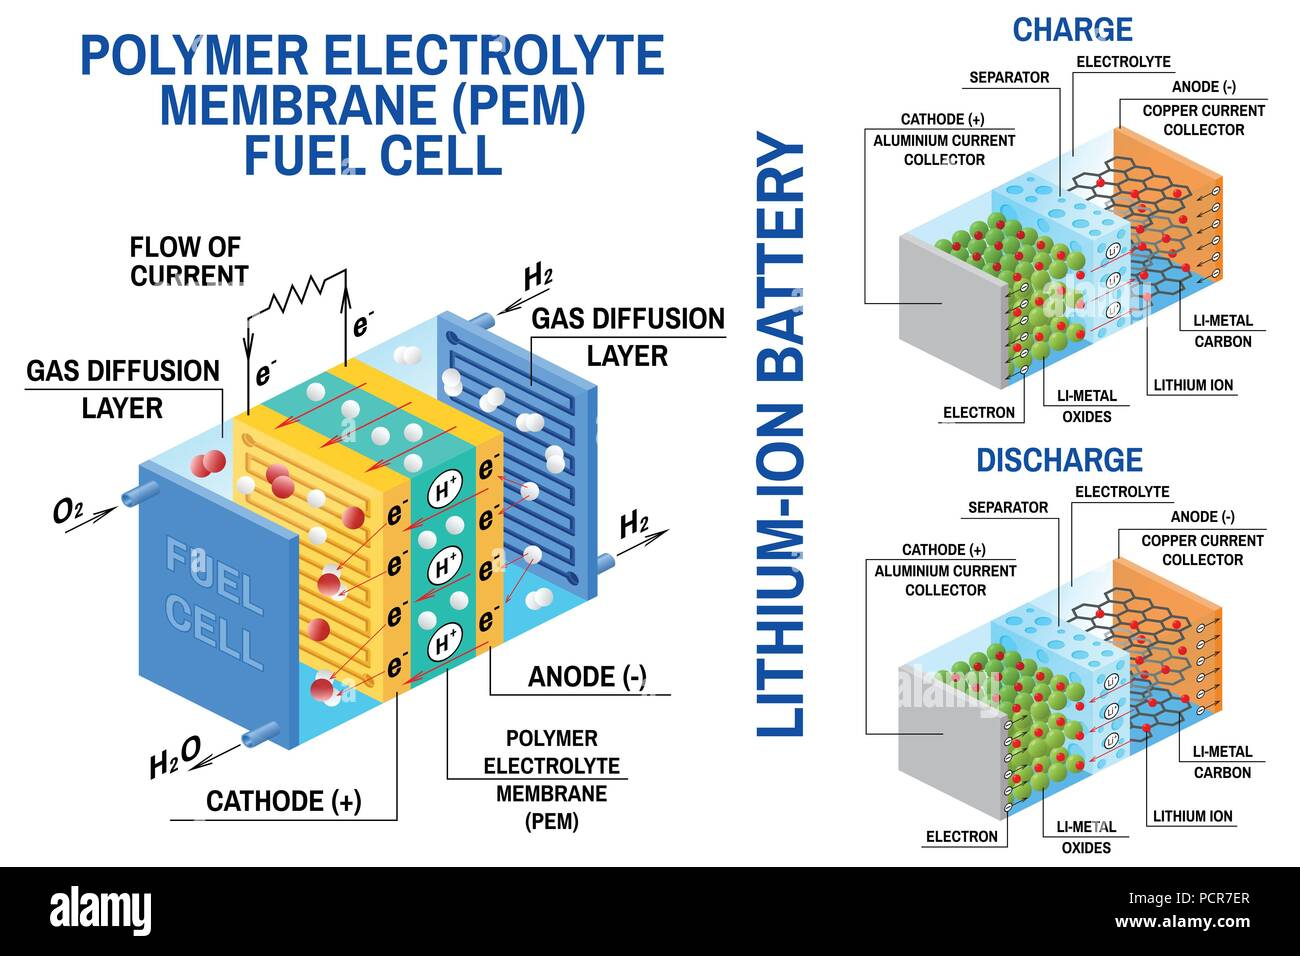 Fuel cell and li ion battery diagram vector device that converts fuel cell and li ion battery diagram vector device that converts chemical potential energy into electrical energy fuel cell uses hydrogen gas and oxygen ccuart Choice Image